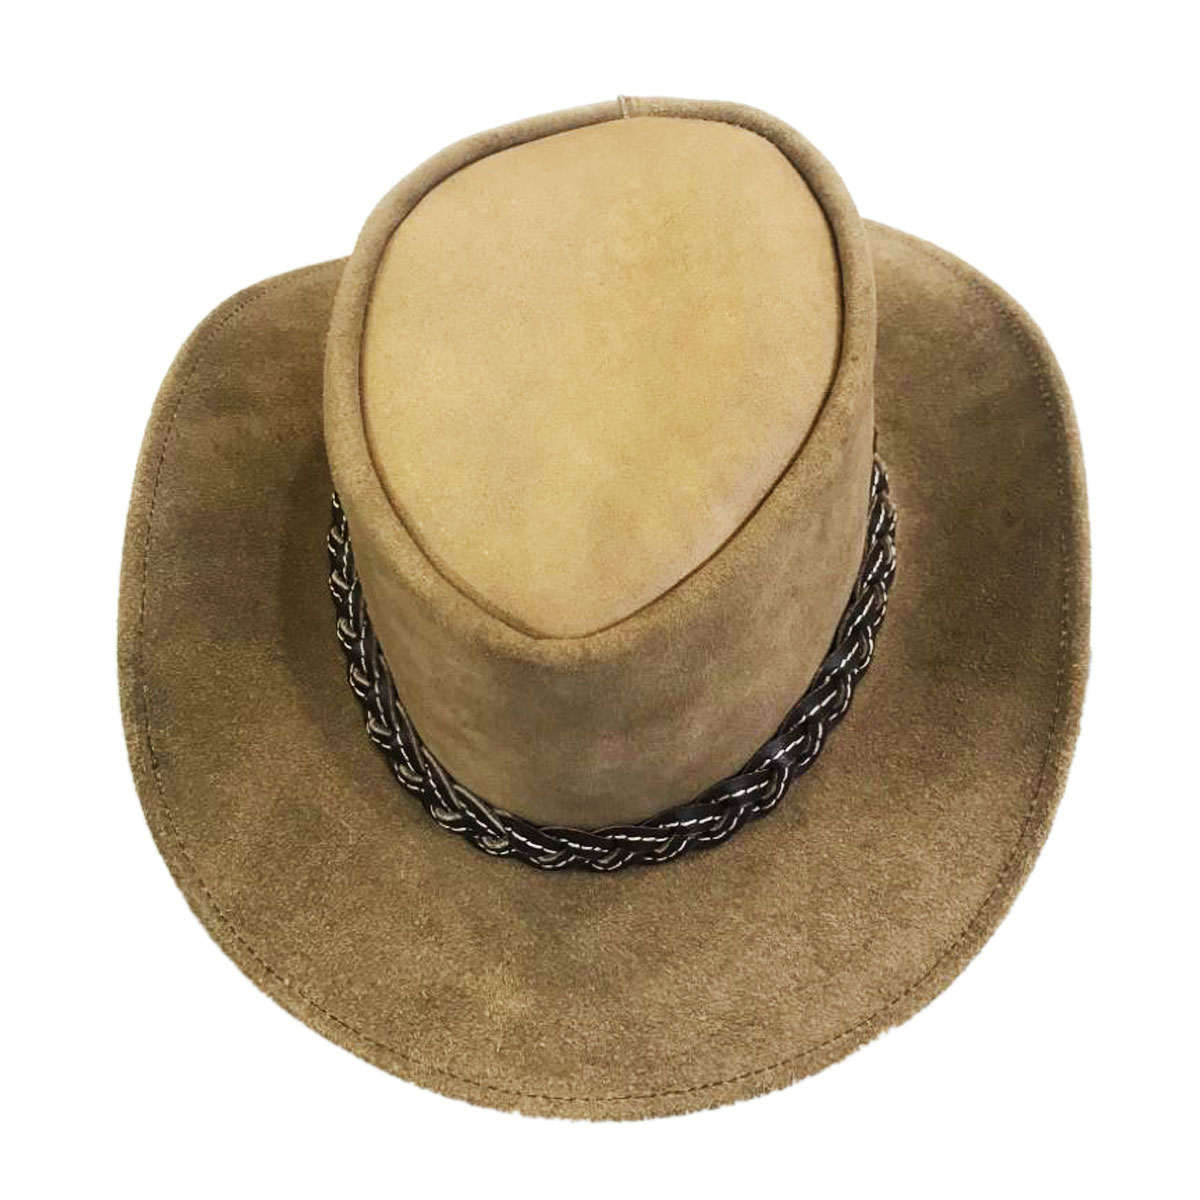 TAN LEATHER HAT